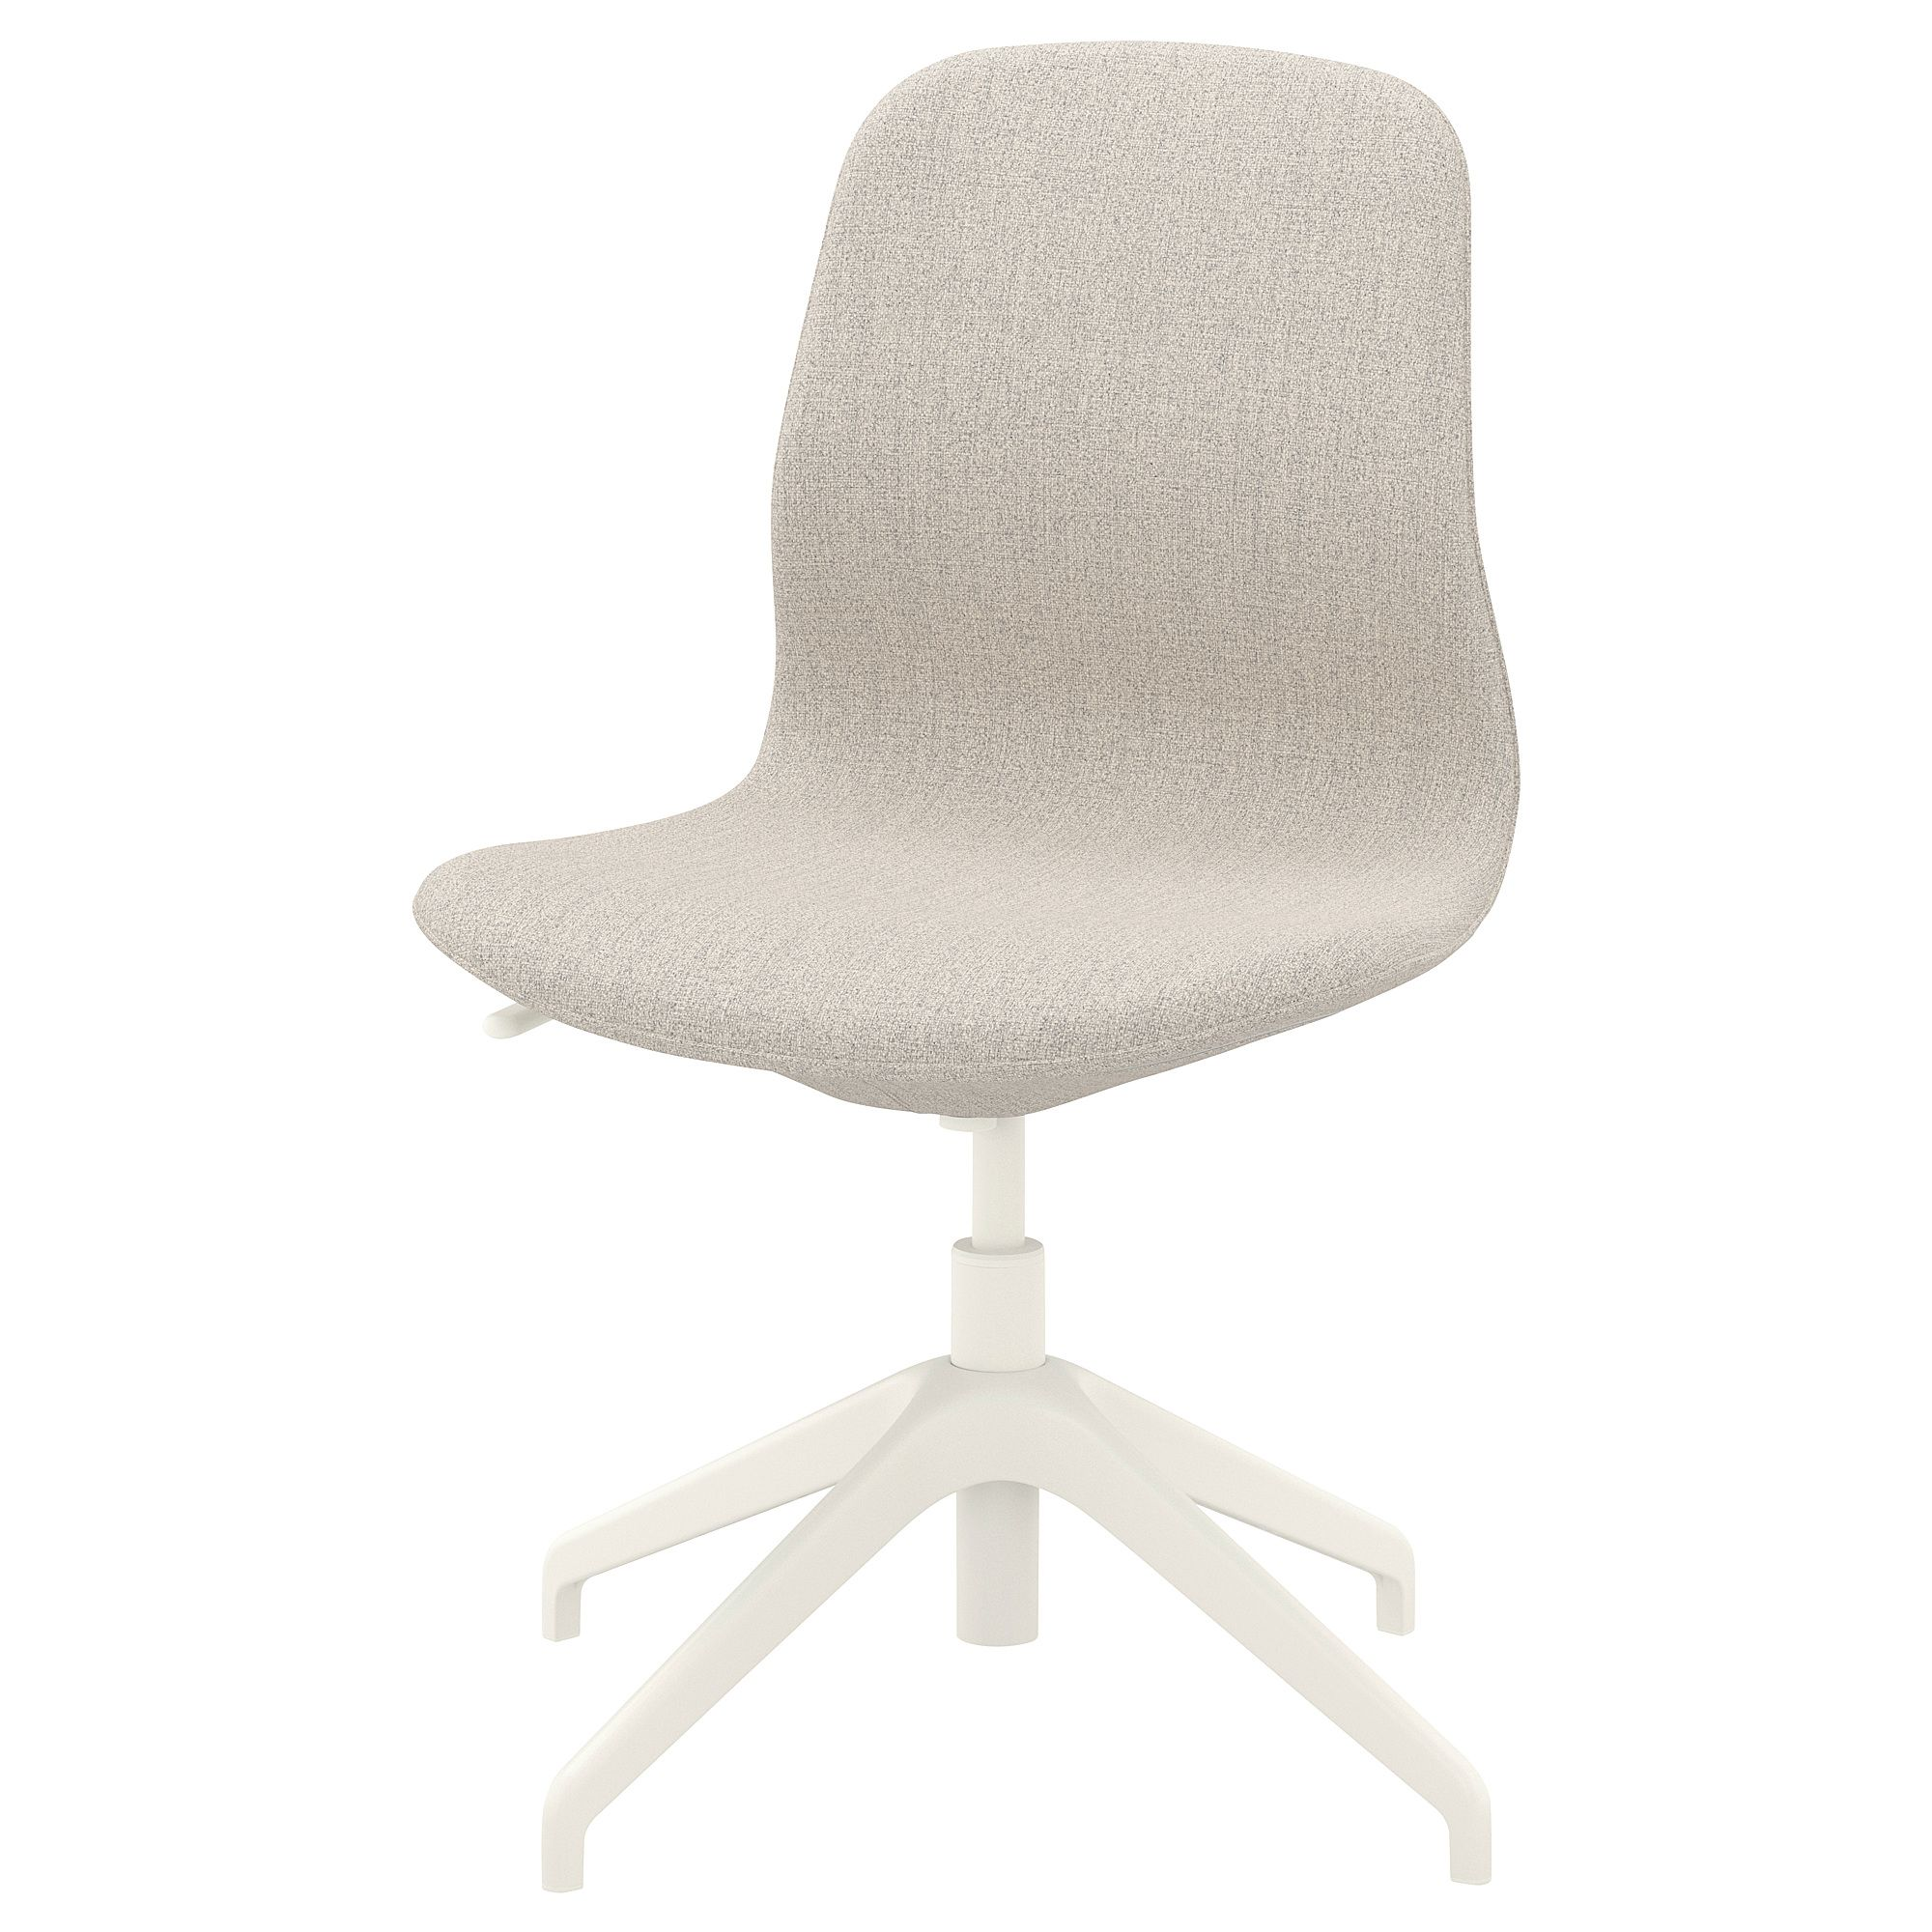 LÅNGFJÄLL Conference chair Gunnared beige, white